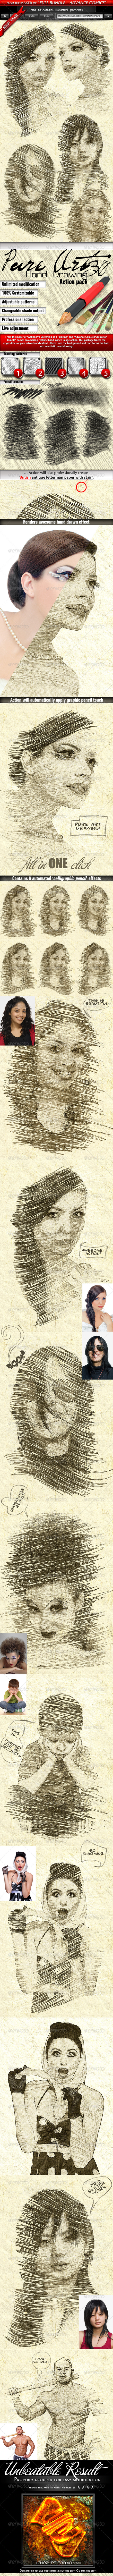 GraphicRiver Pure Art Hand Drawing 30 British Graphic Pencil 5392195